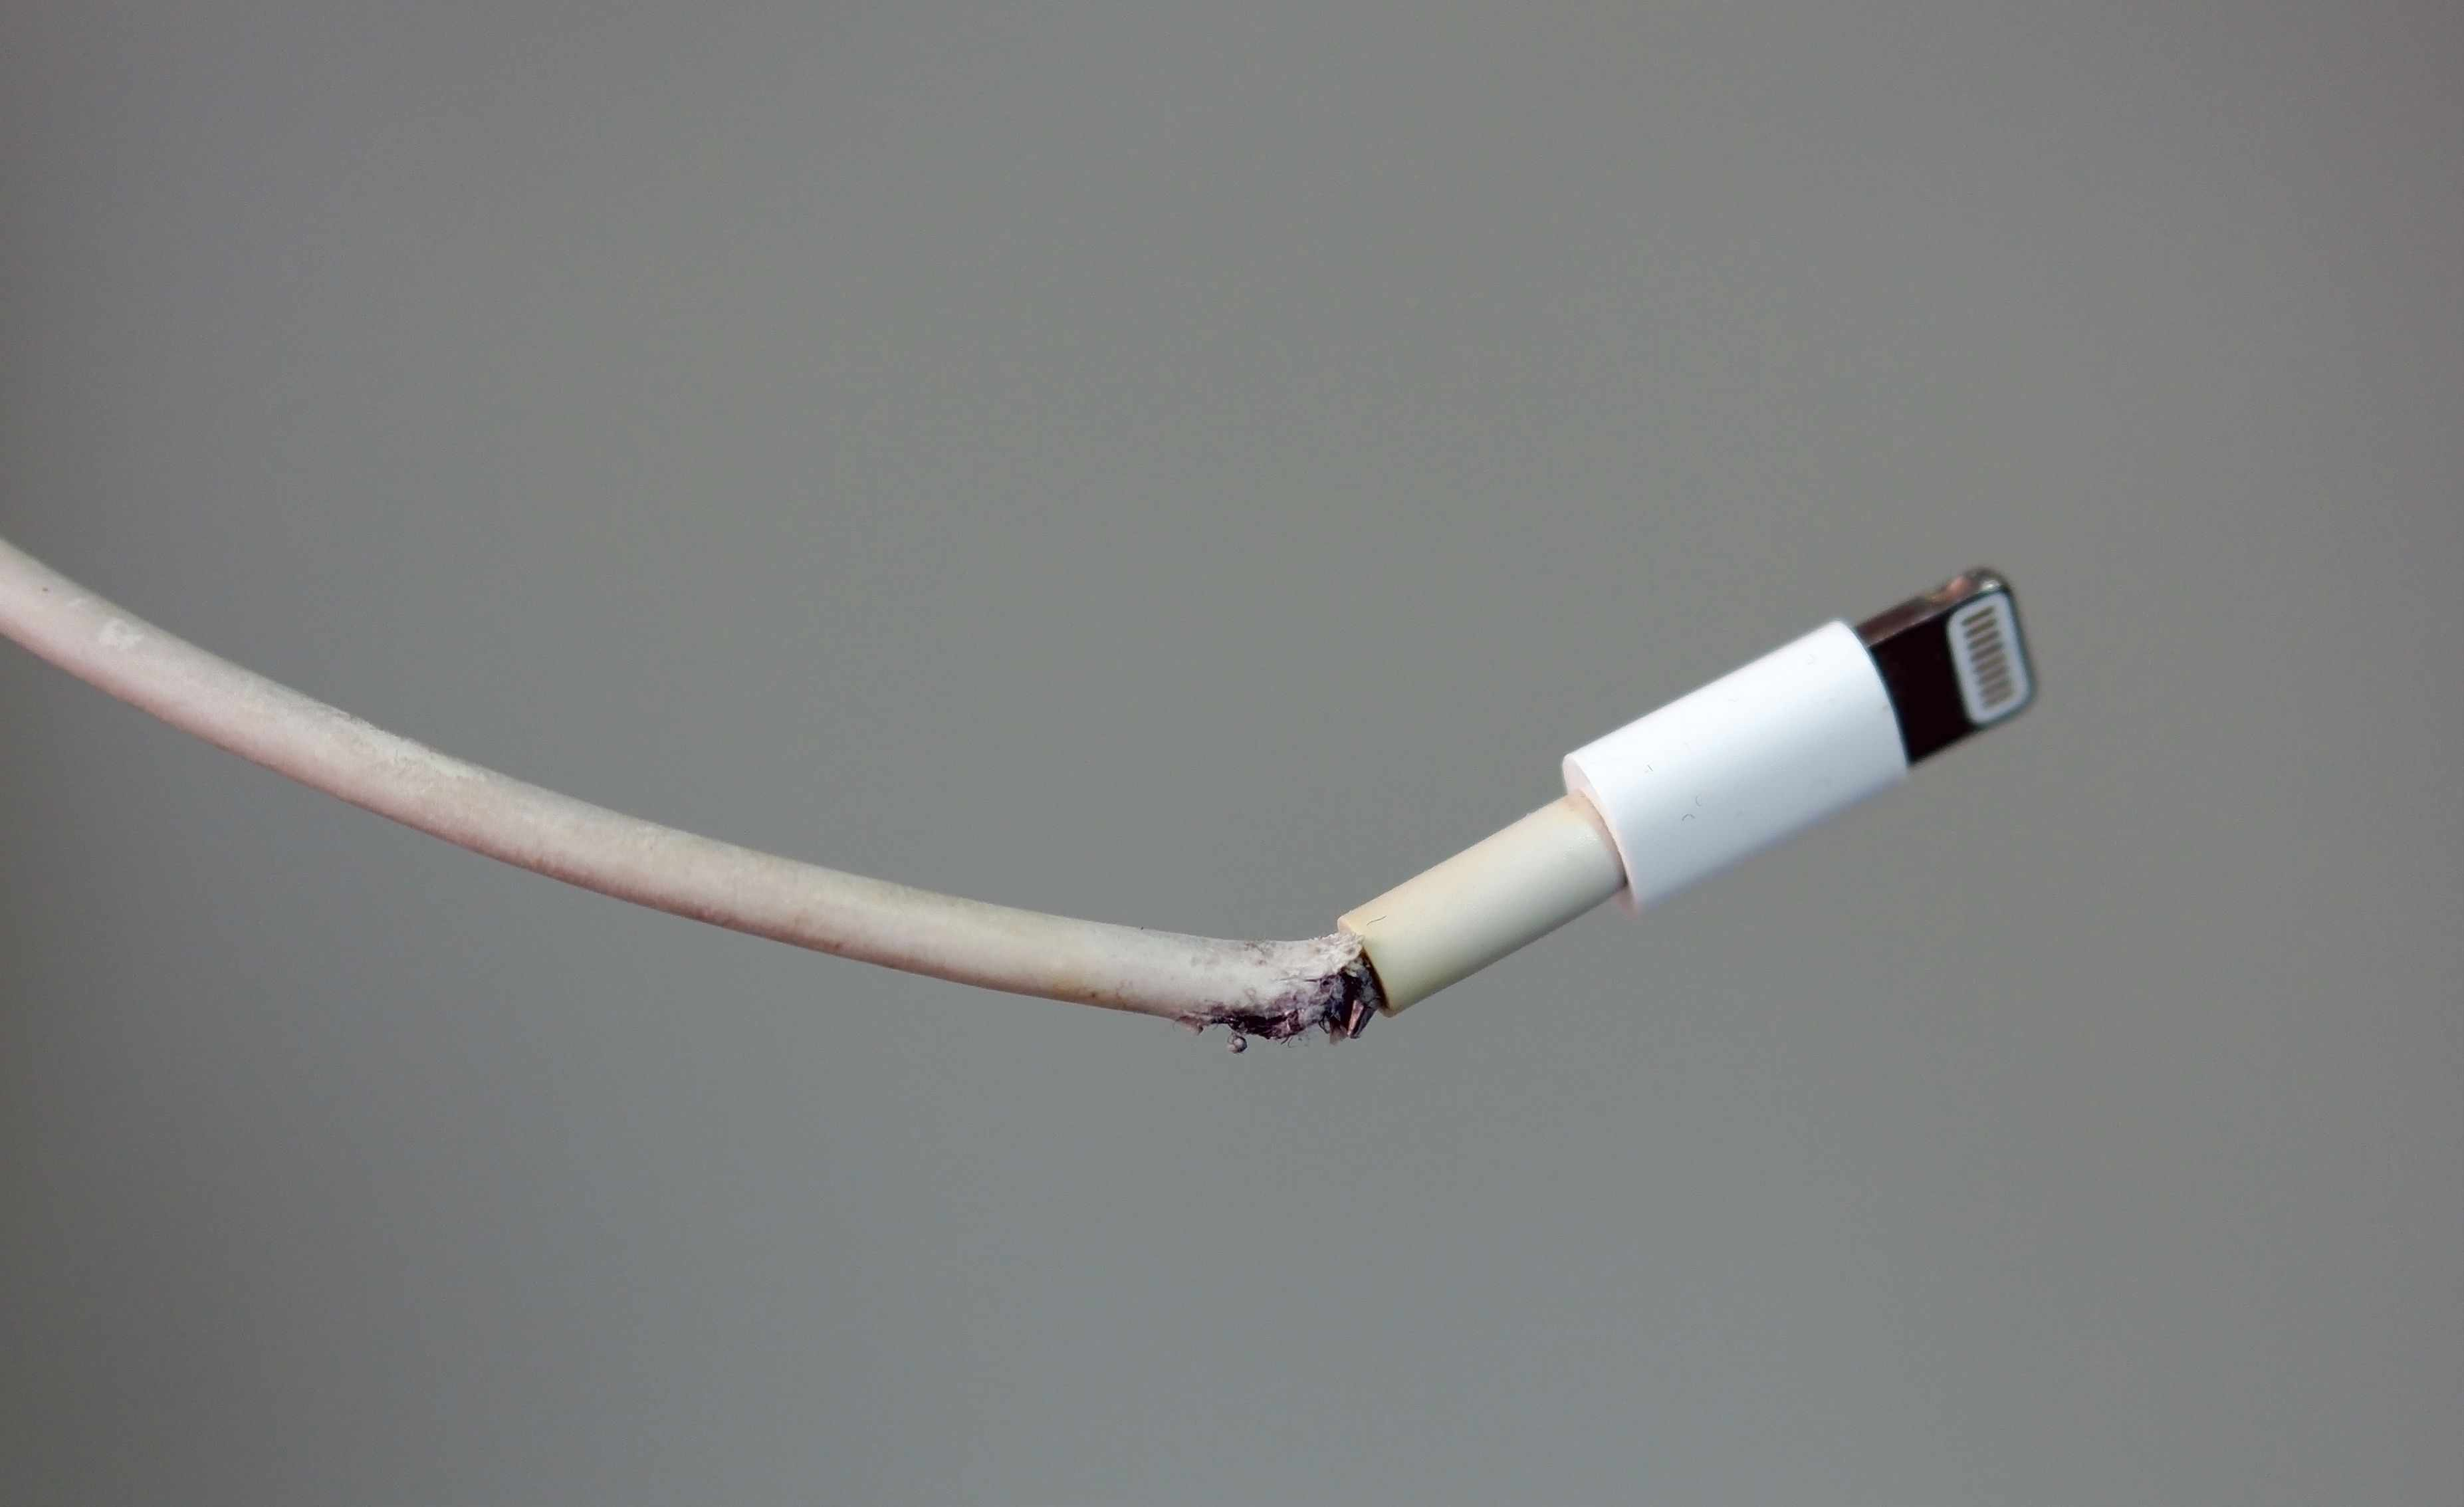 A damaged Lightning cable that may catch fire.